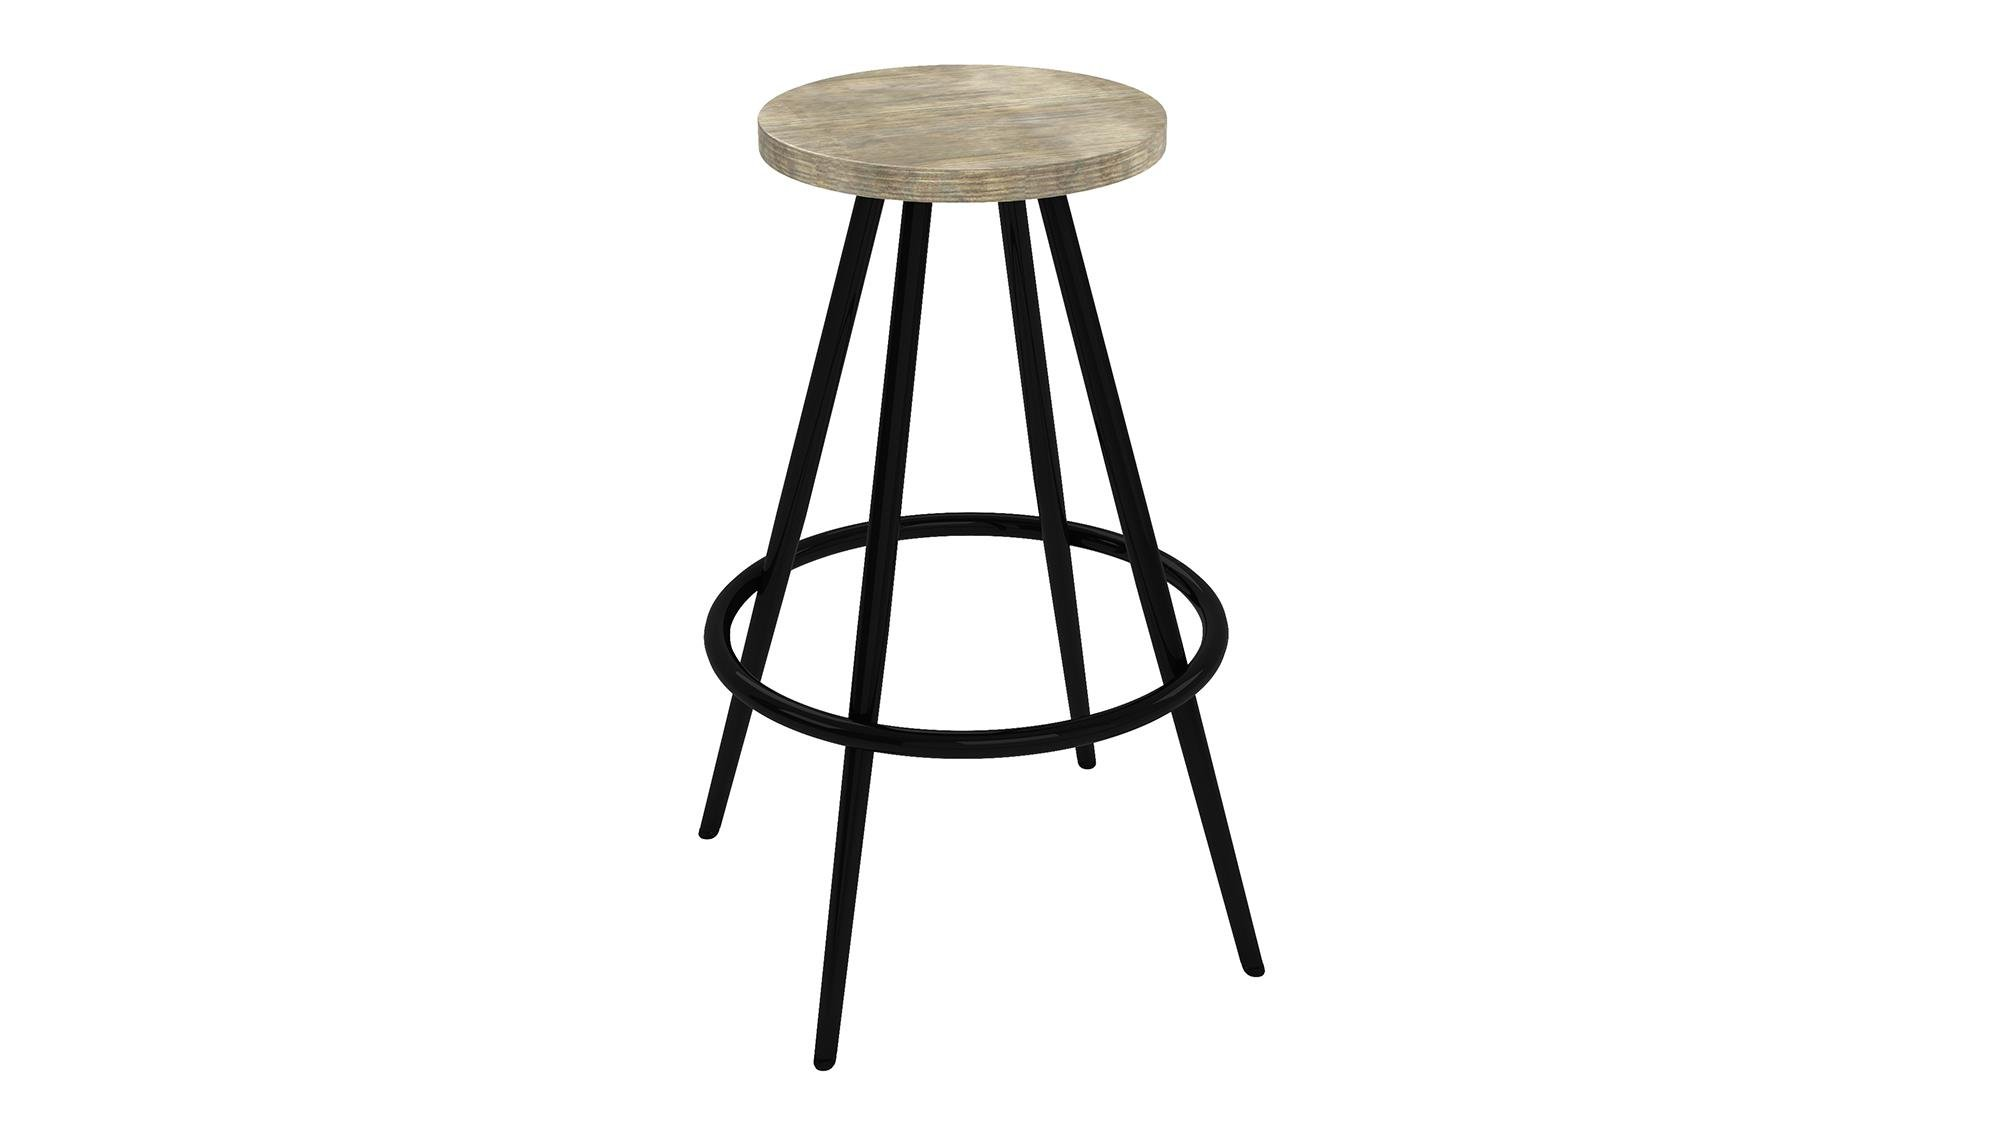 Novogratz Leo Farmhouse 29.5-Inch Bar Stool with Footrest, Rustic and Modern Style, Black Metal Frame with Grey Wood Seat by Novogratz